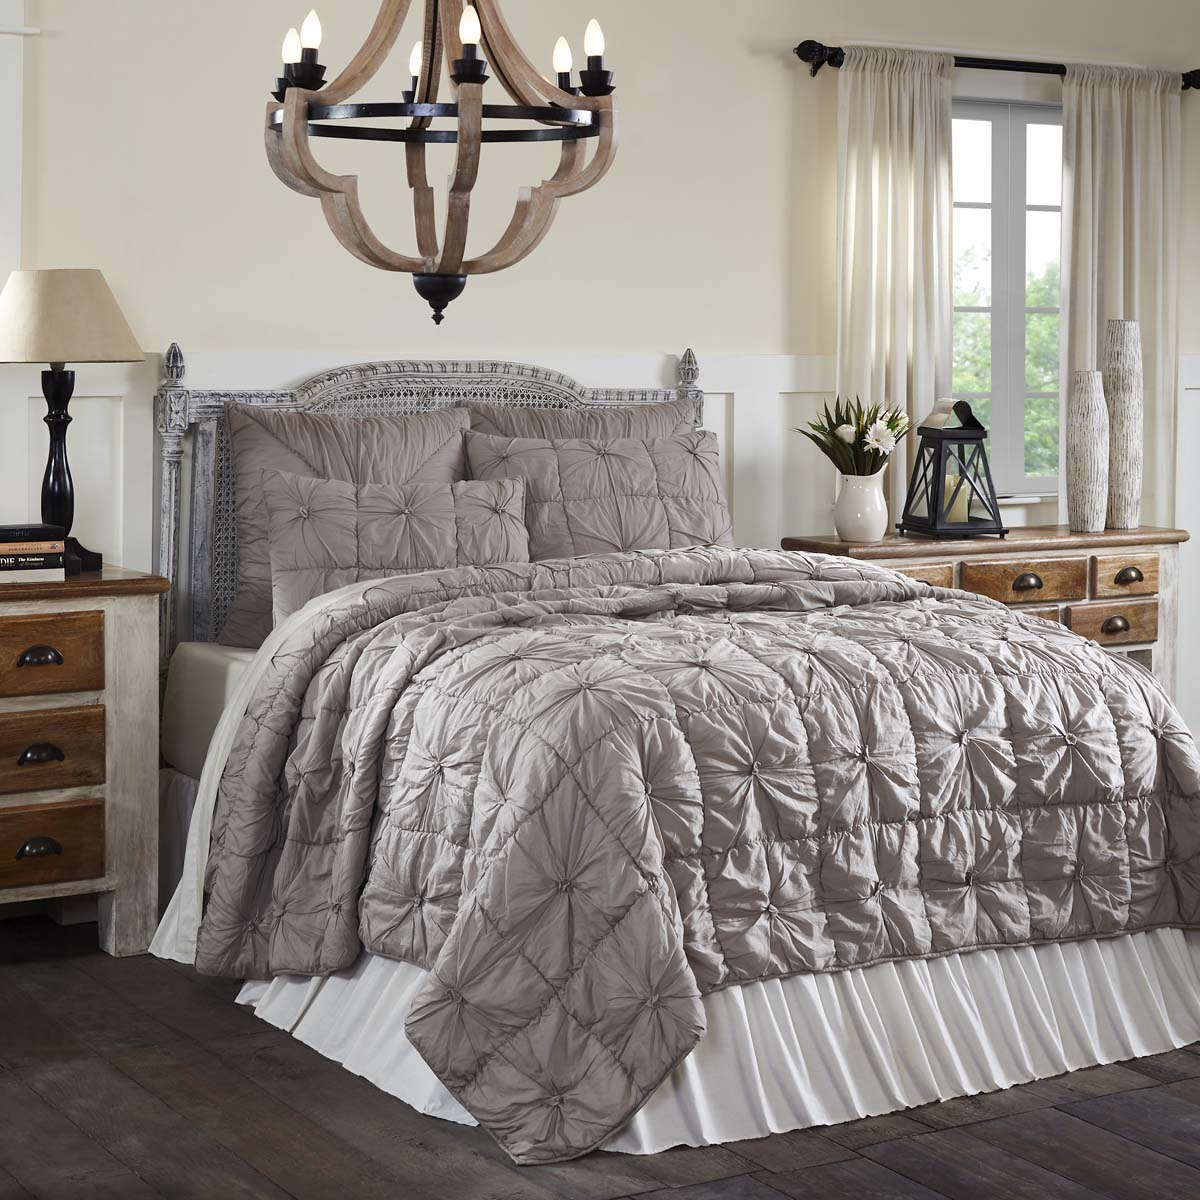 Farmhouse Bedding VHC Camille Quilt Set Cotton Solid Solid Solid Farbe Pleated Voile e72ec1